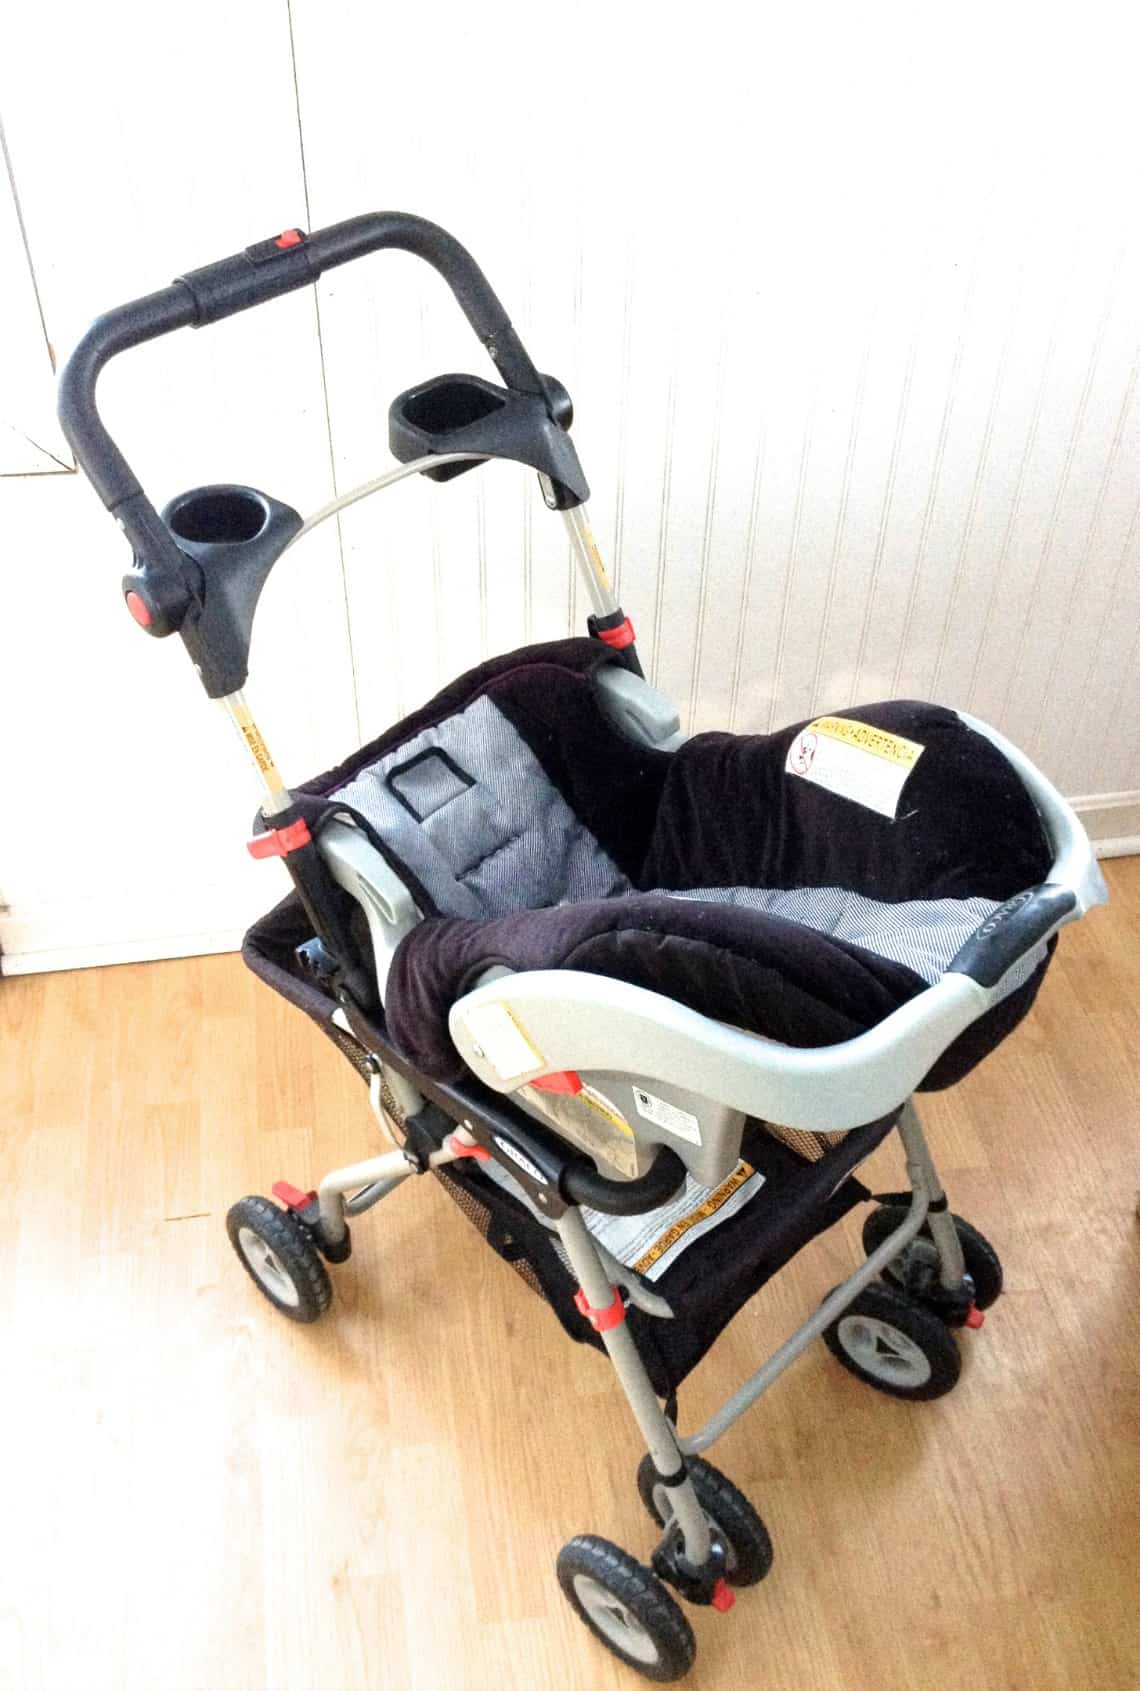 Stroller with car seat.